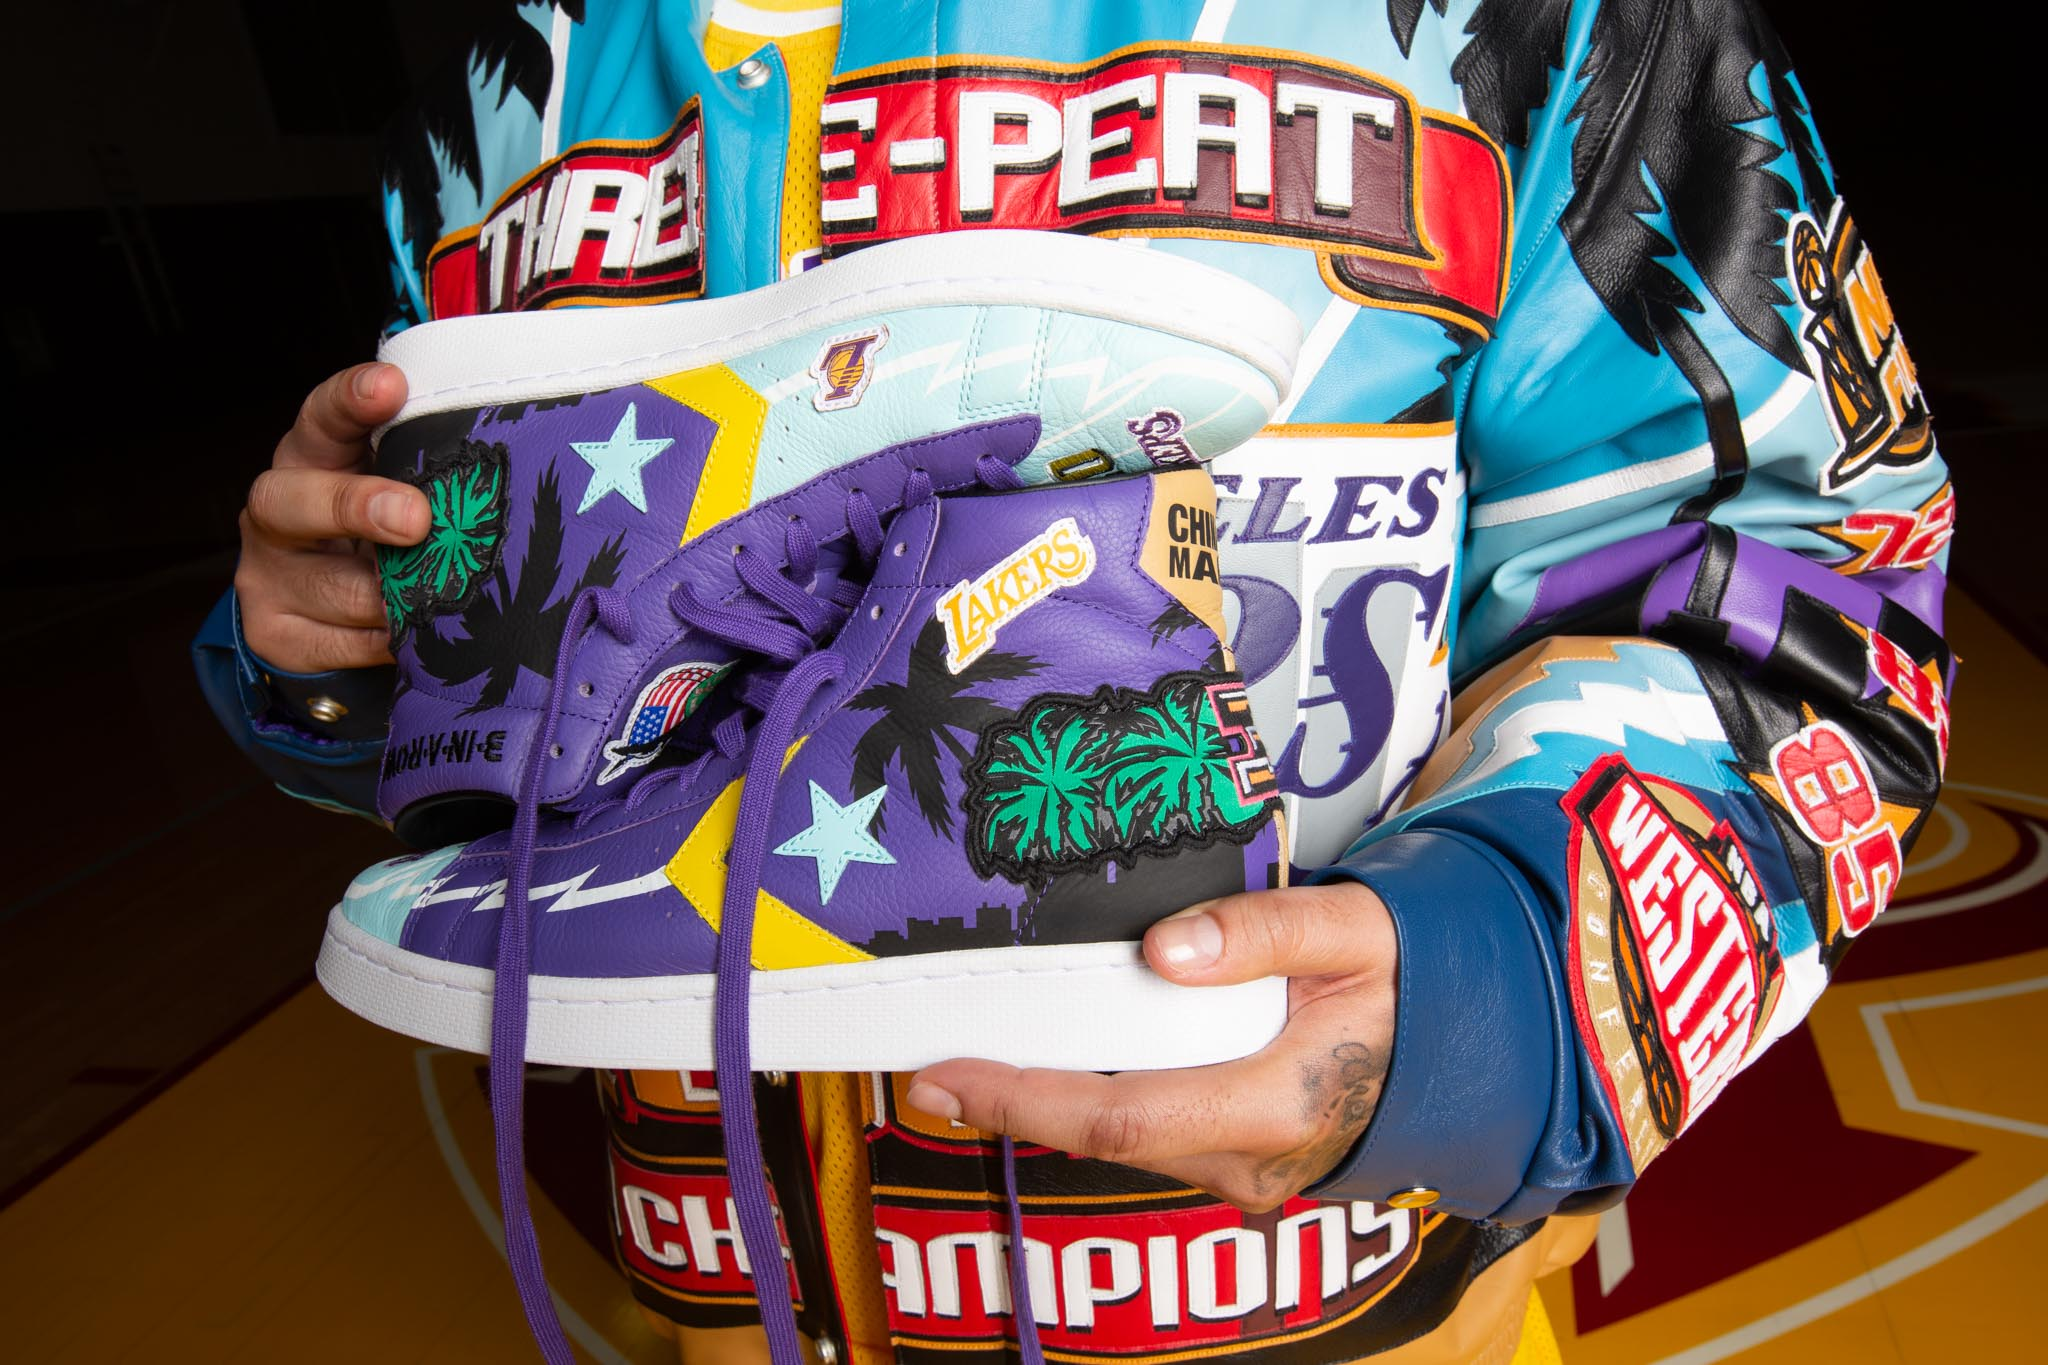 Iconic Lakers and Bulls Jacket Designs Land on Converse's Chuck 70 and Pro Leather